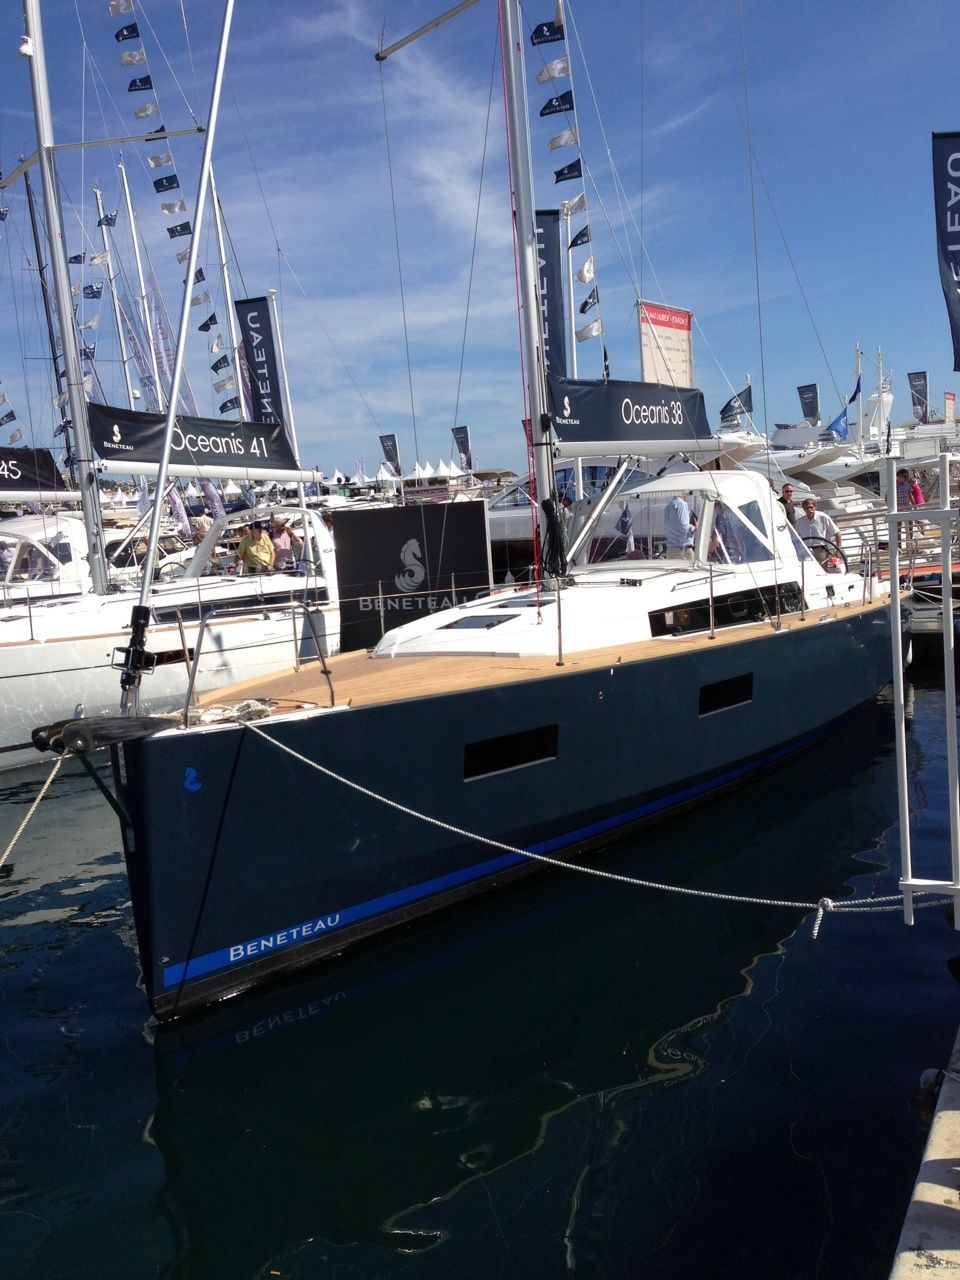 Oceanis 38 with dark hull and teak decks at the Cannes Boat